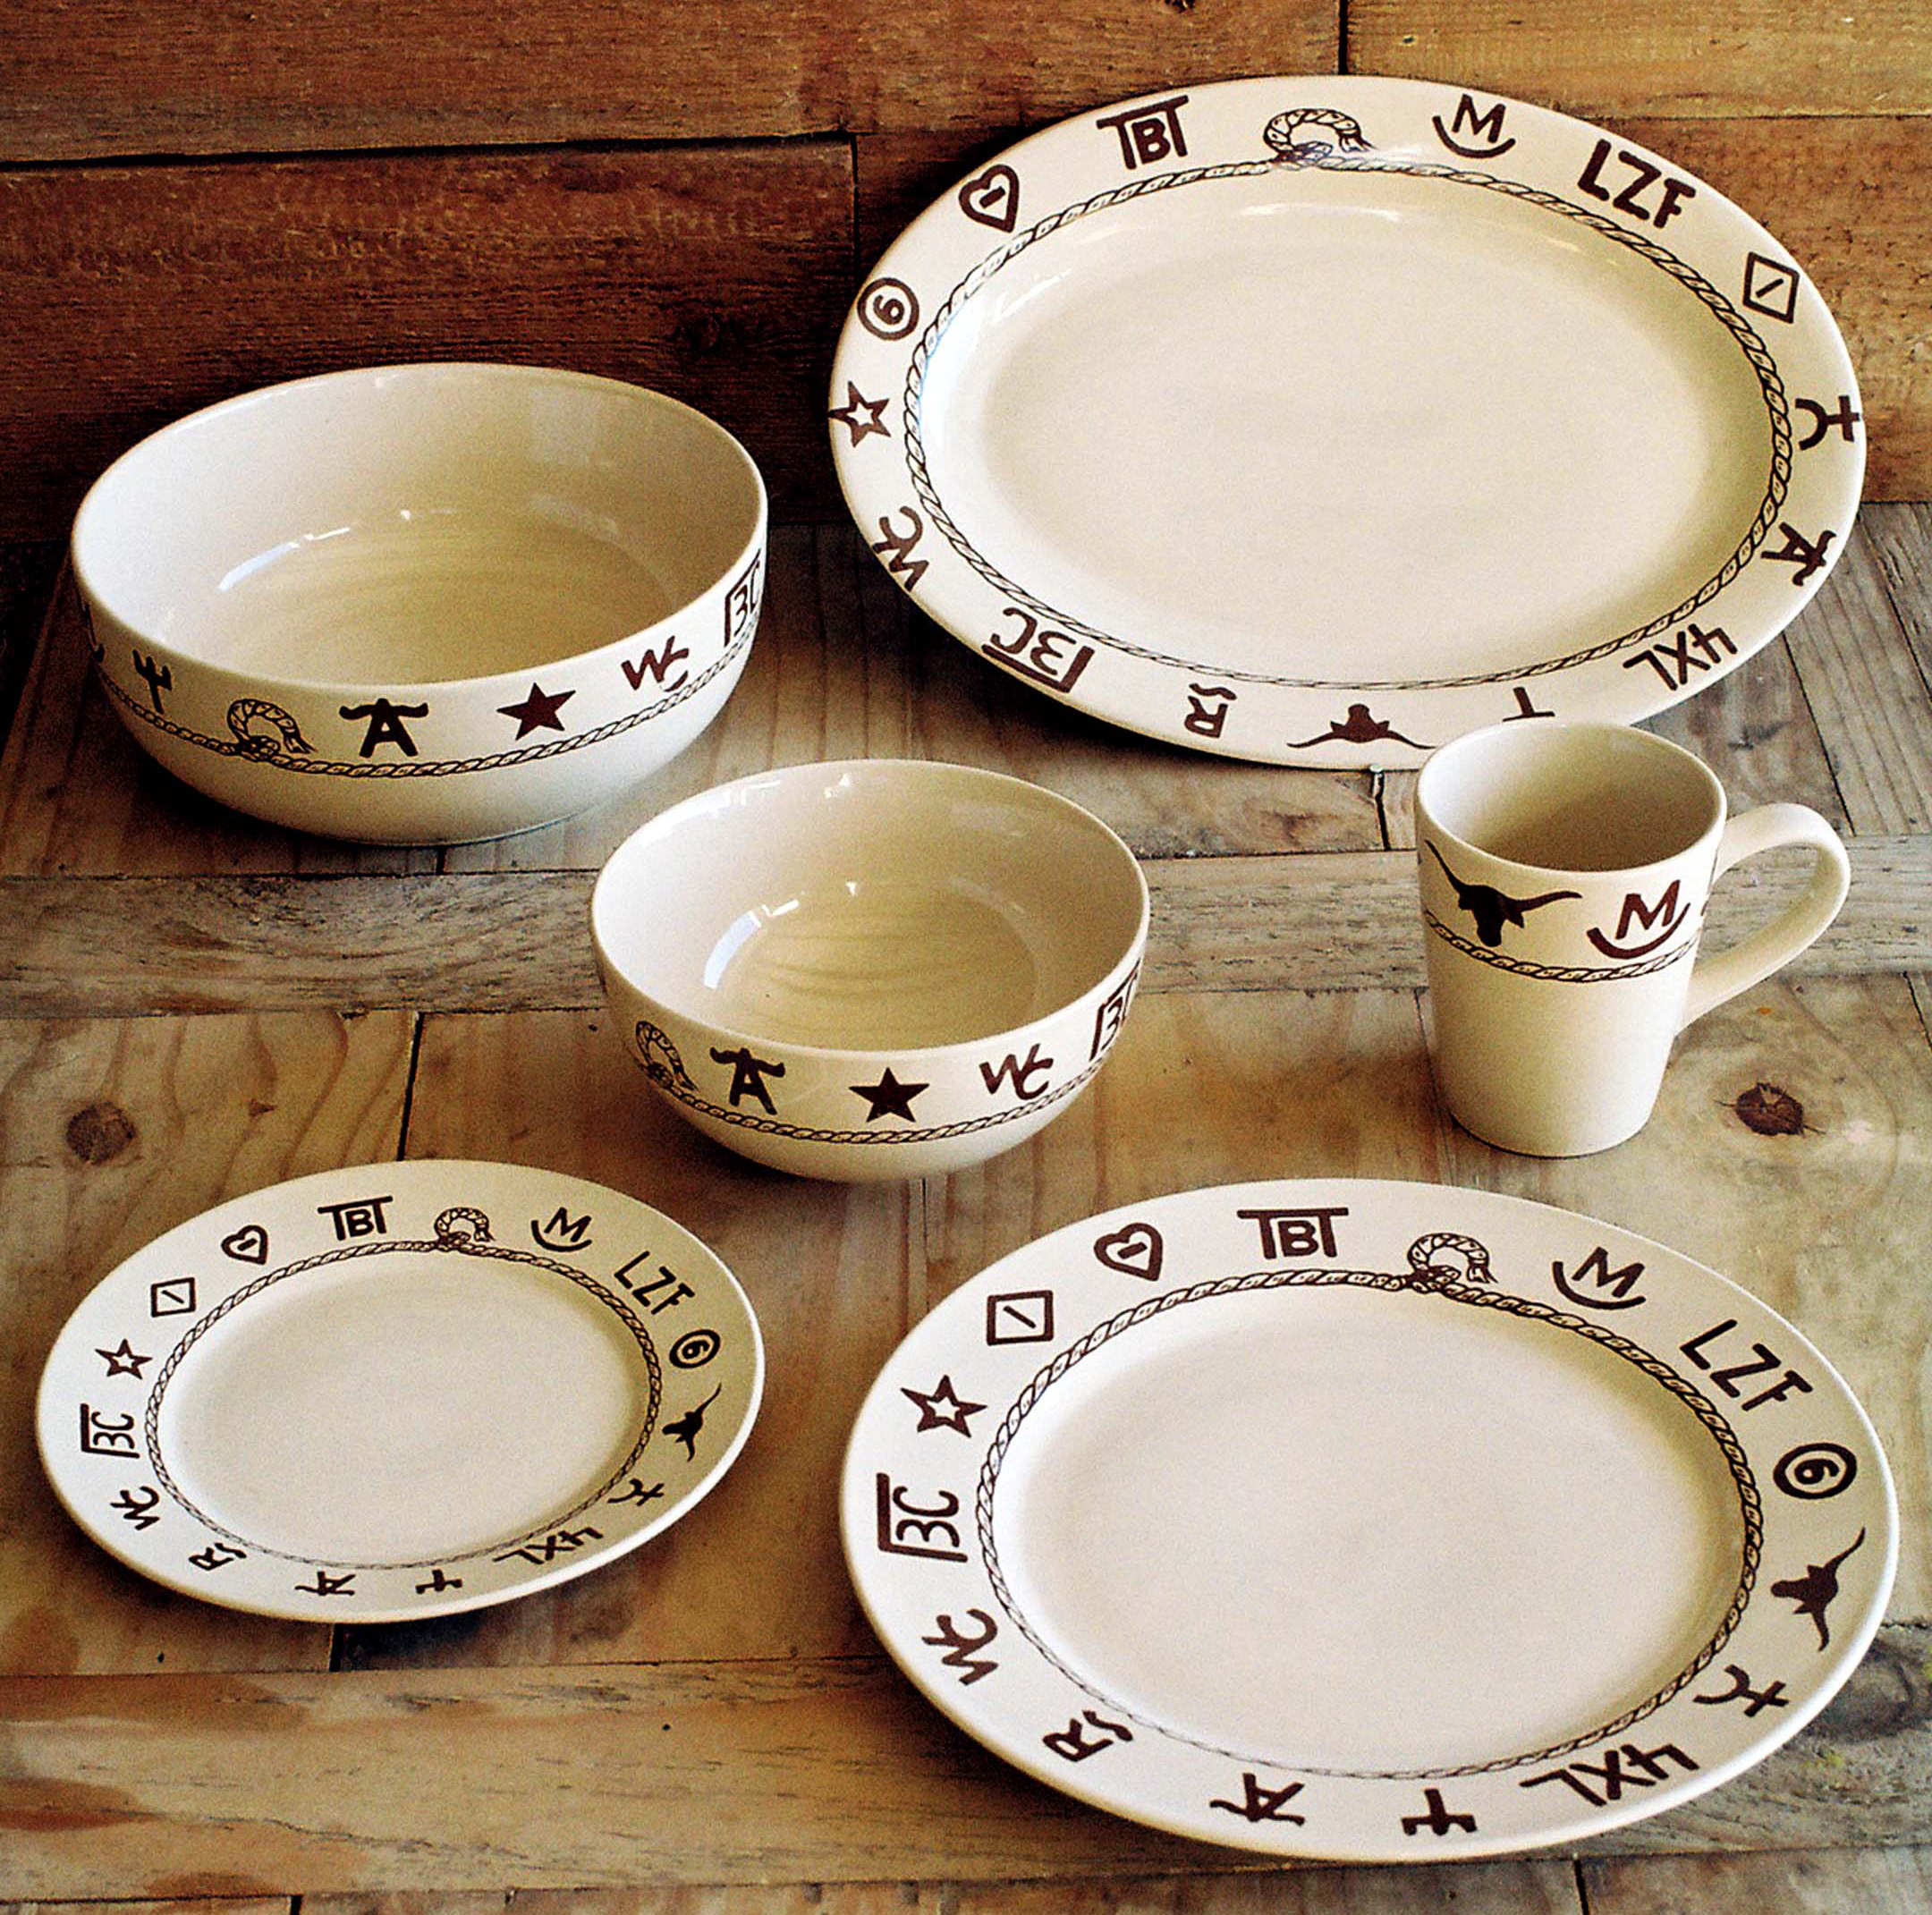 western dishware dinnerware [ LARGER IMAGE ] & Western dinnerware dishware goblets branded dinnerware dining ...